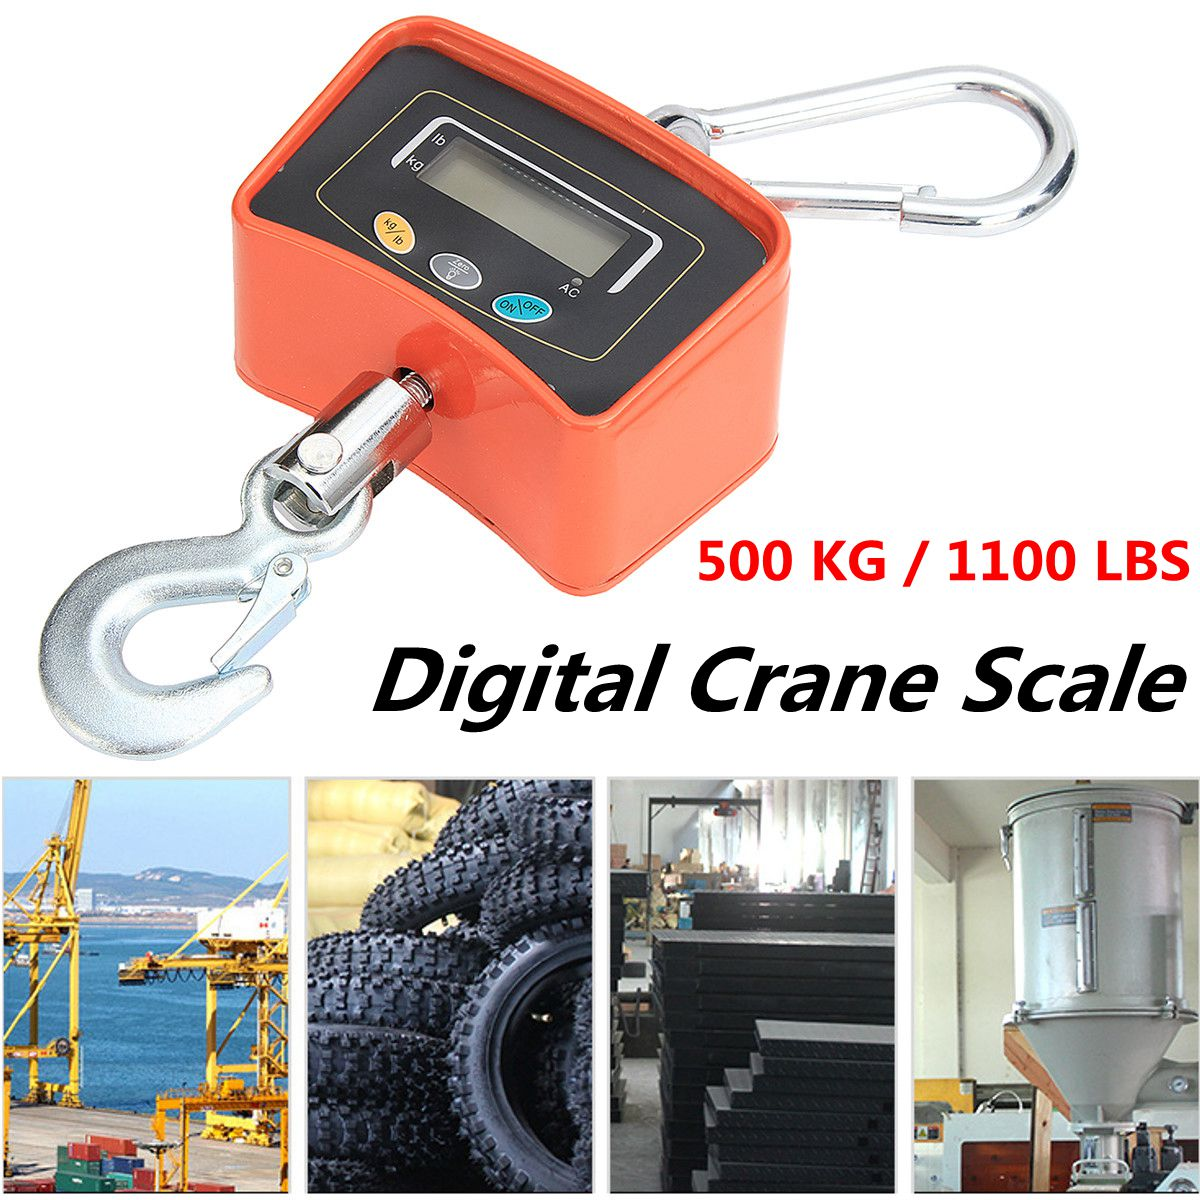 500KG/1100 LBS Digital Crane Scale 110V/220V Heavy Industrial Hanging Scale Electronic Weighing Balance Tools - 2